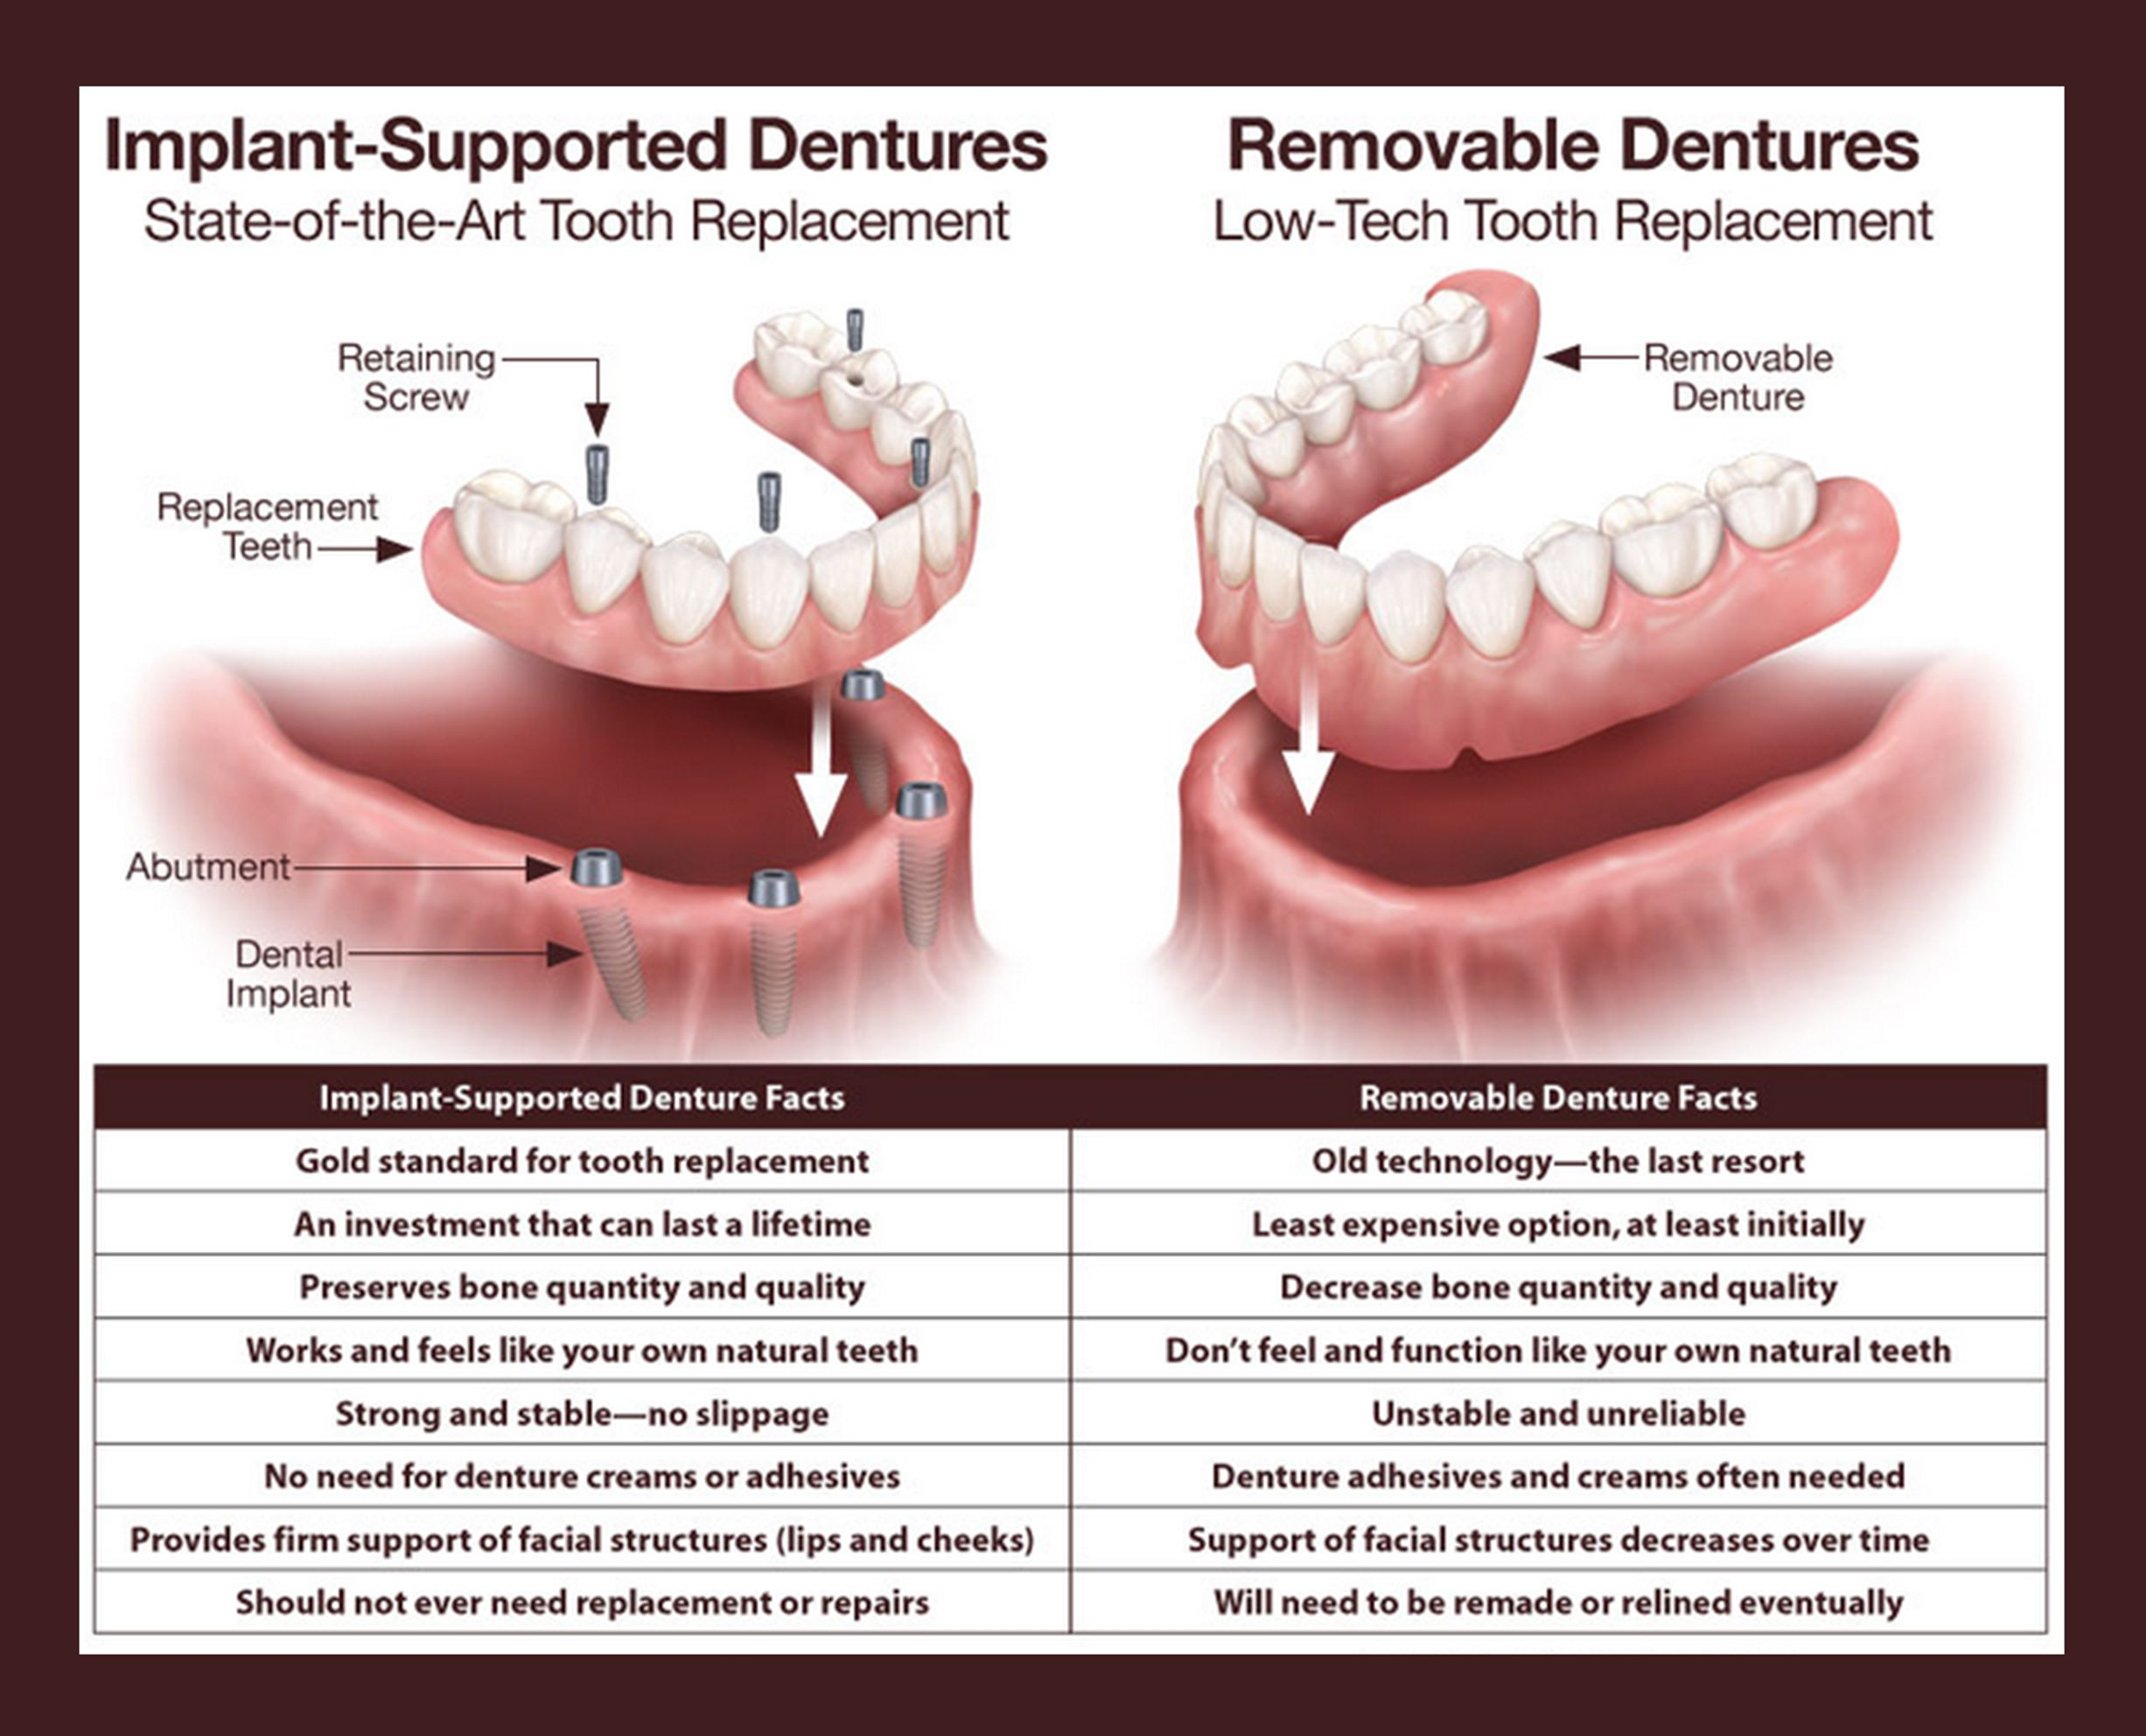 Implant Supported Dentures Vs Removable Dentures Implant Dentistry Dental Implants Cost Dental